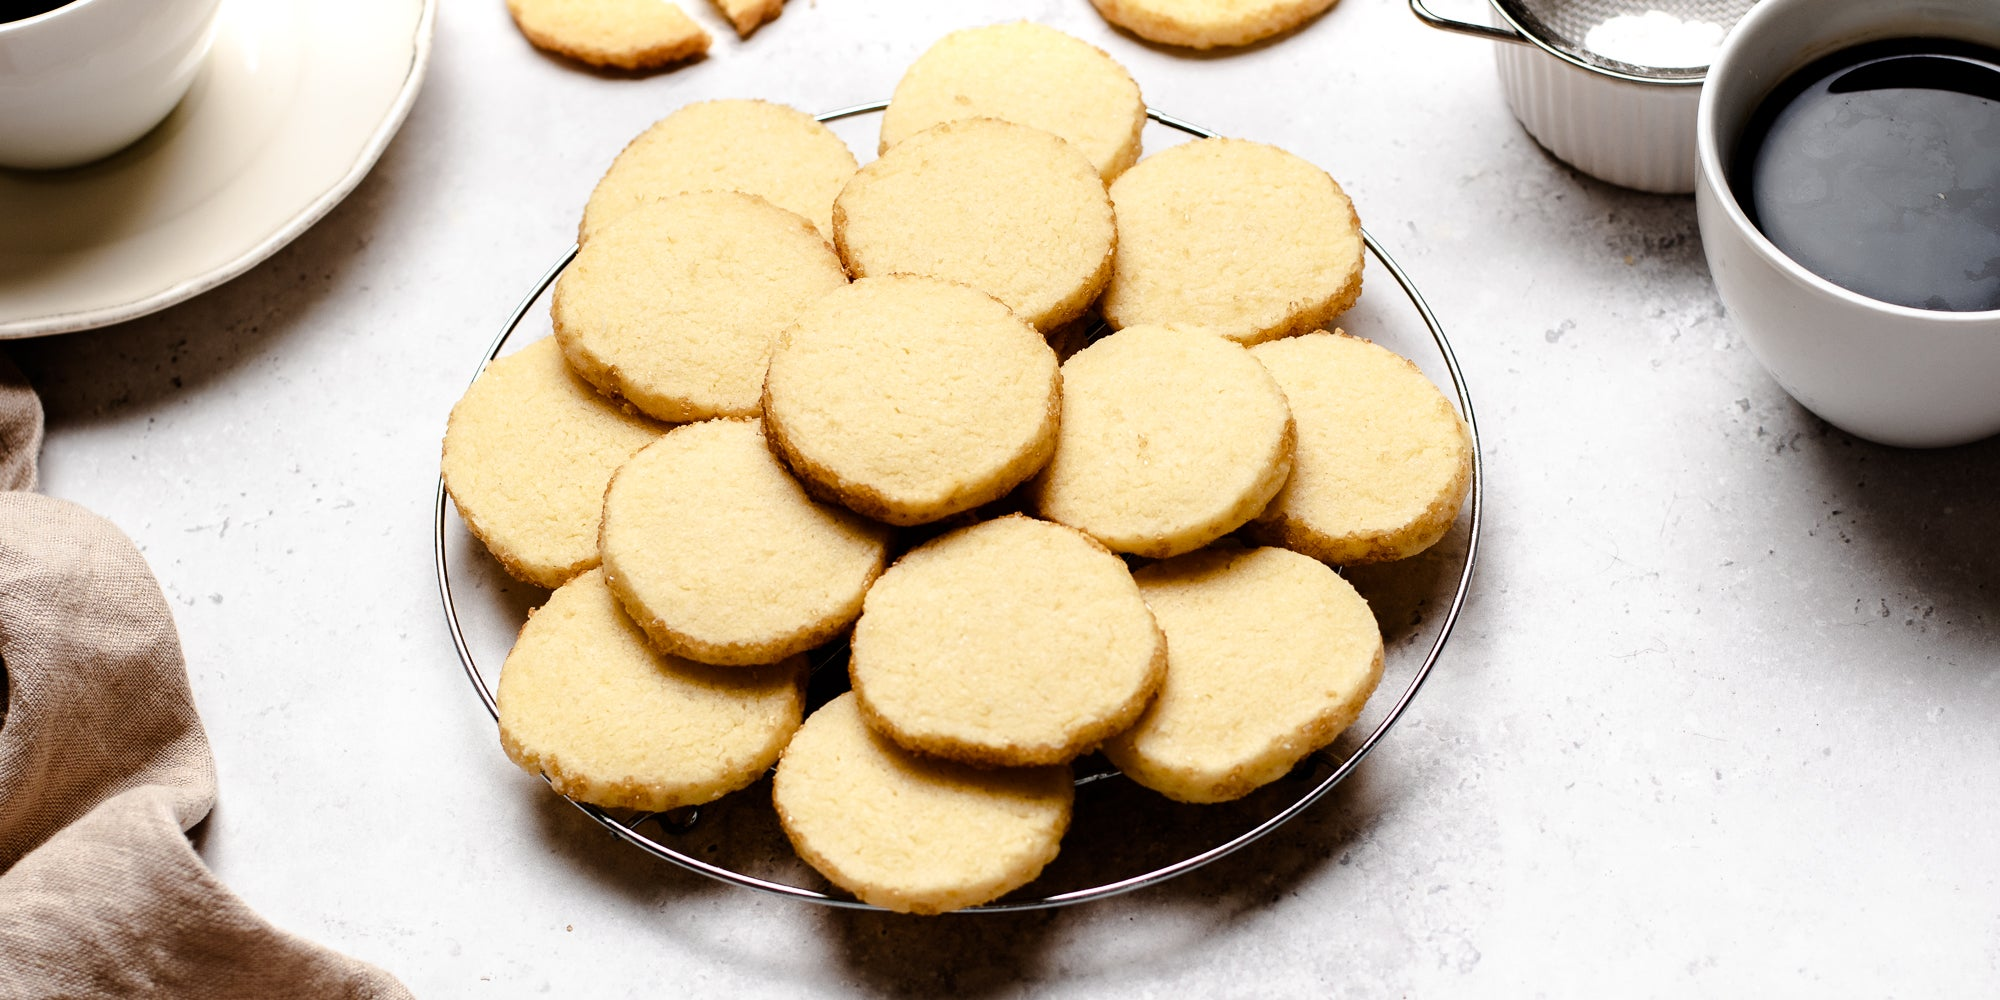 Close up of a batch of fresh biscuits baked from Shortbread Dough on a plate, next to cups and saucers of coffee